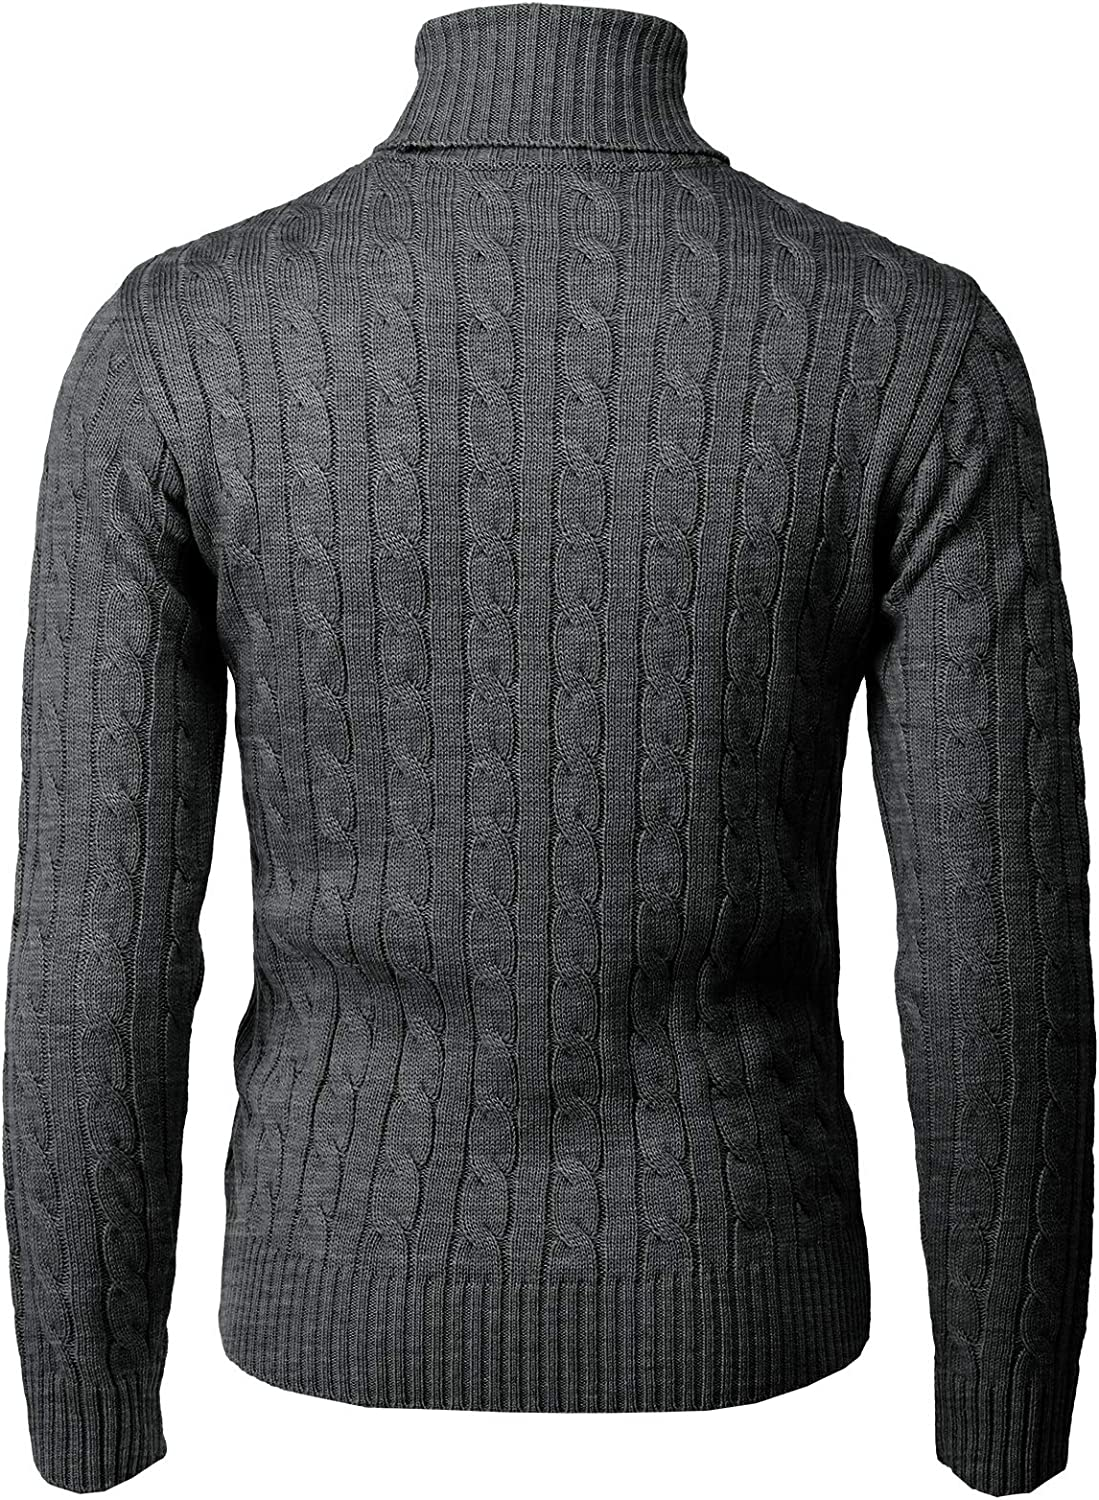 H2H Mens Casual Slim Fit Pullover Sweaters Knitted Turtleneck Thermal Various Patterned